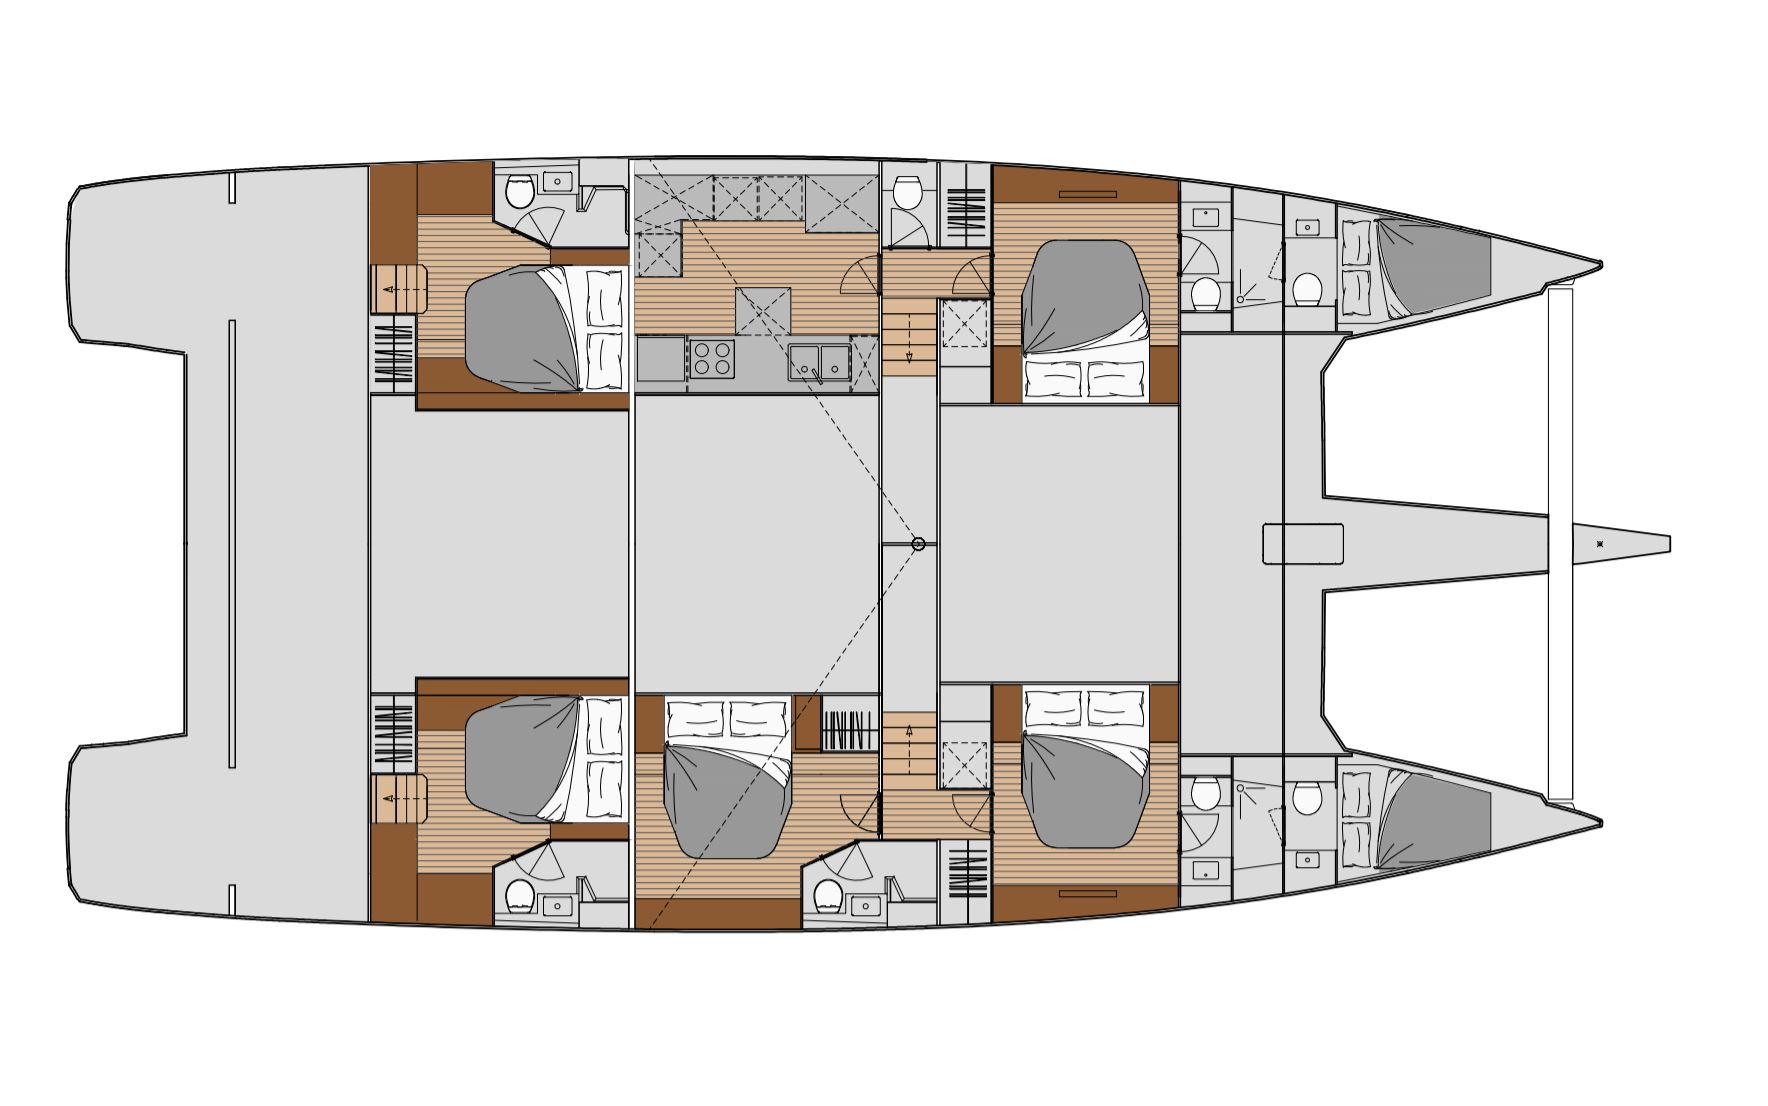 New Sail Catamaran for Sale  Alegria 67 Layout & Accommodations